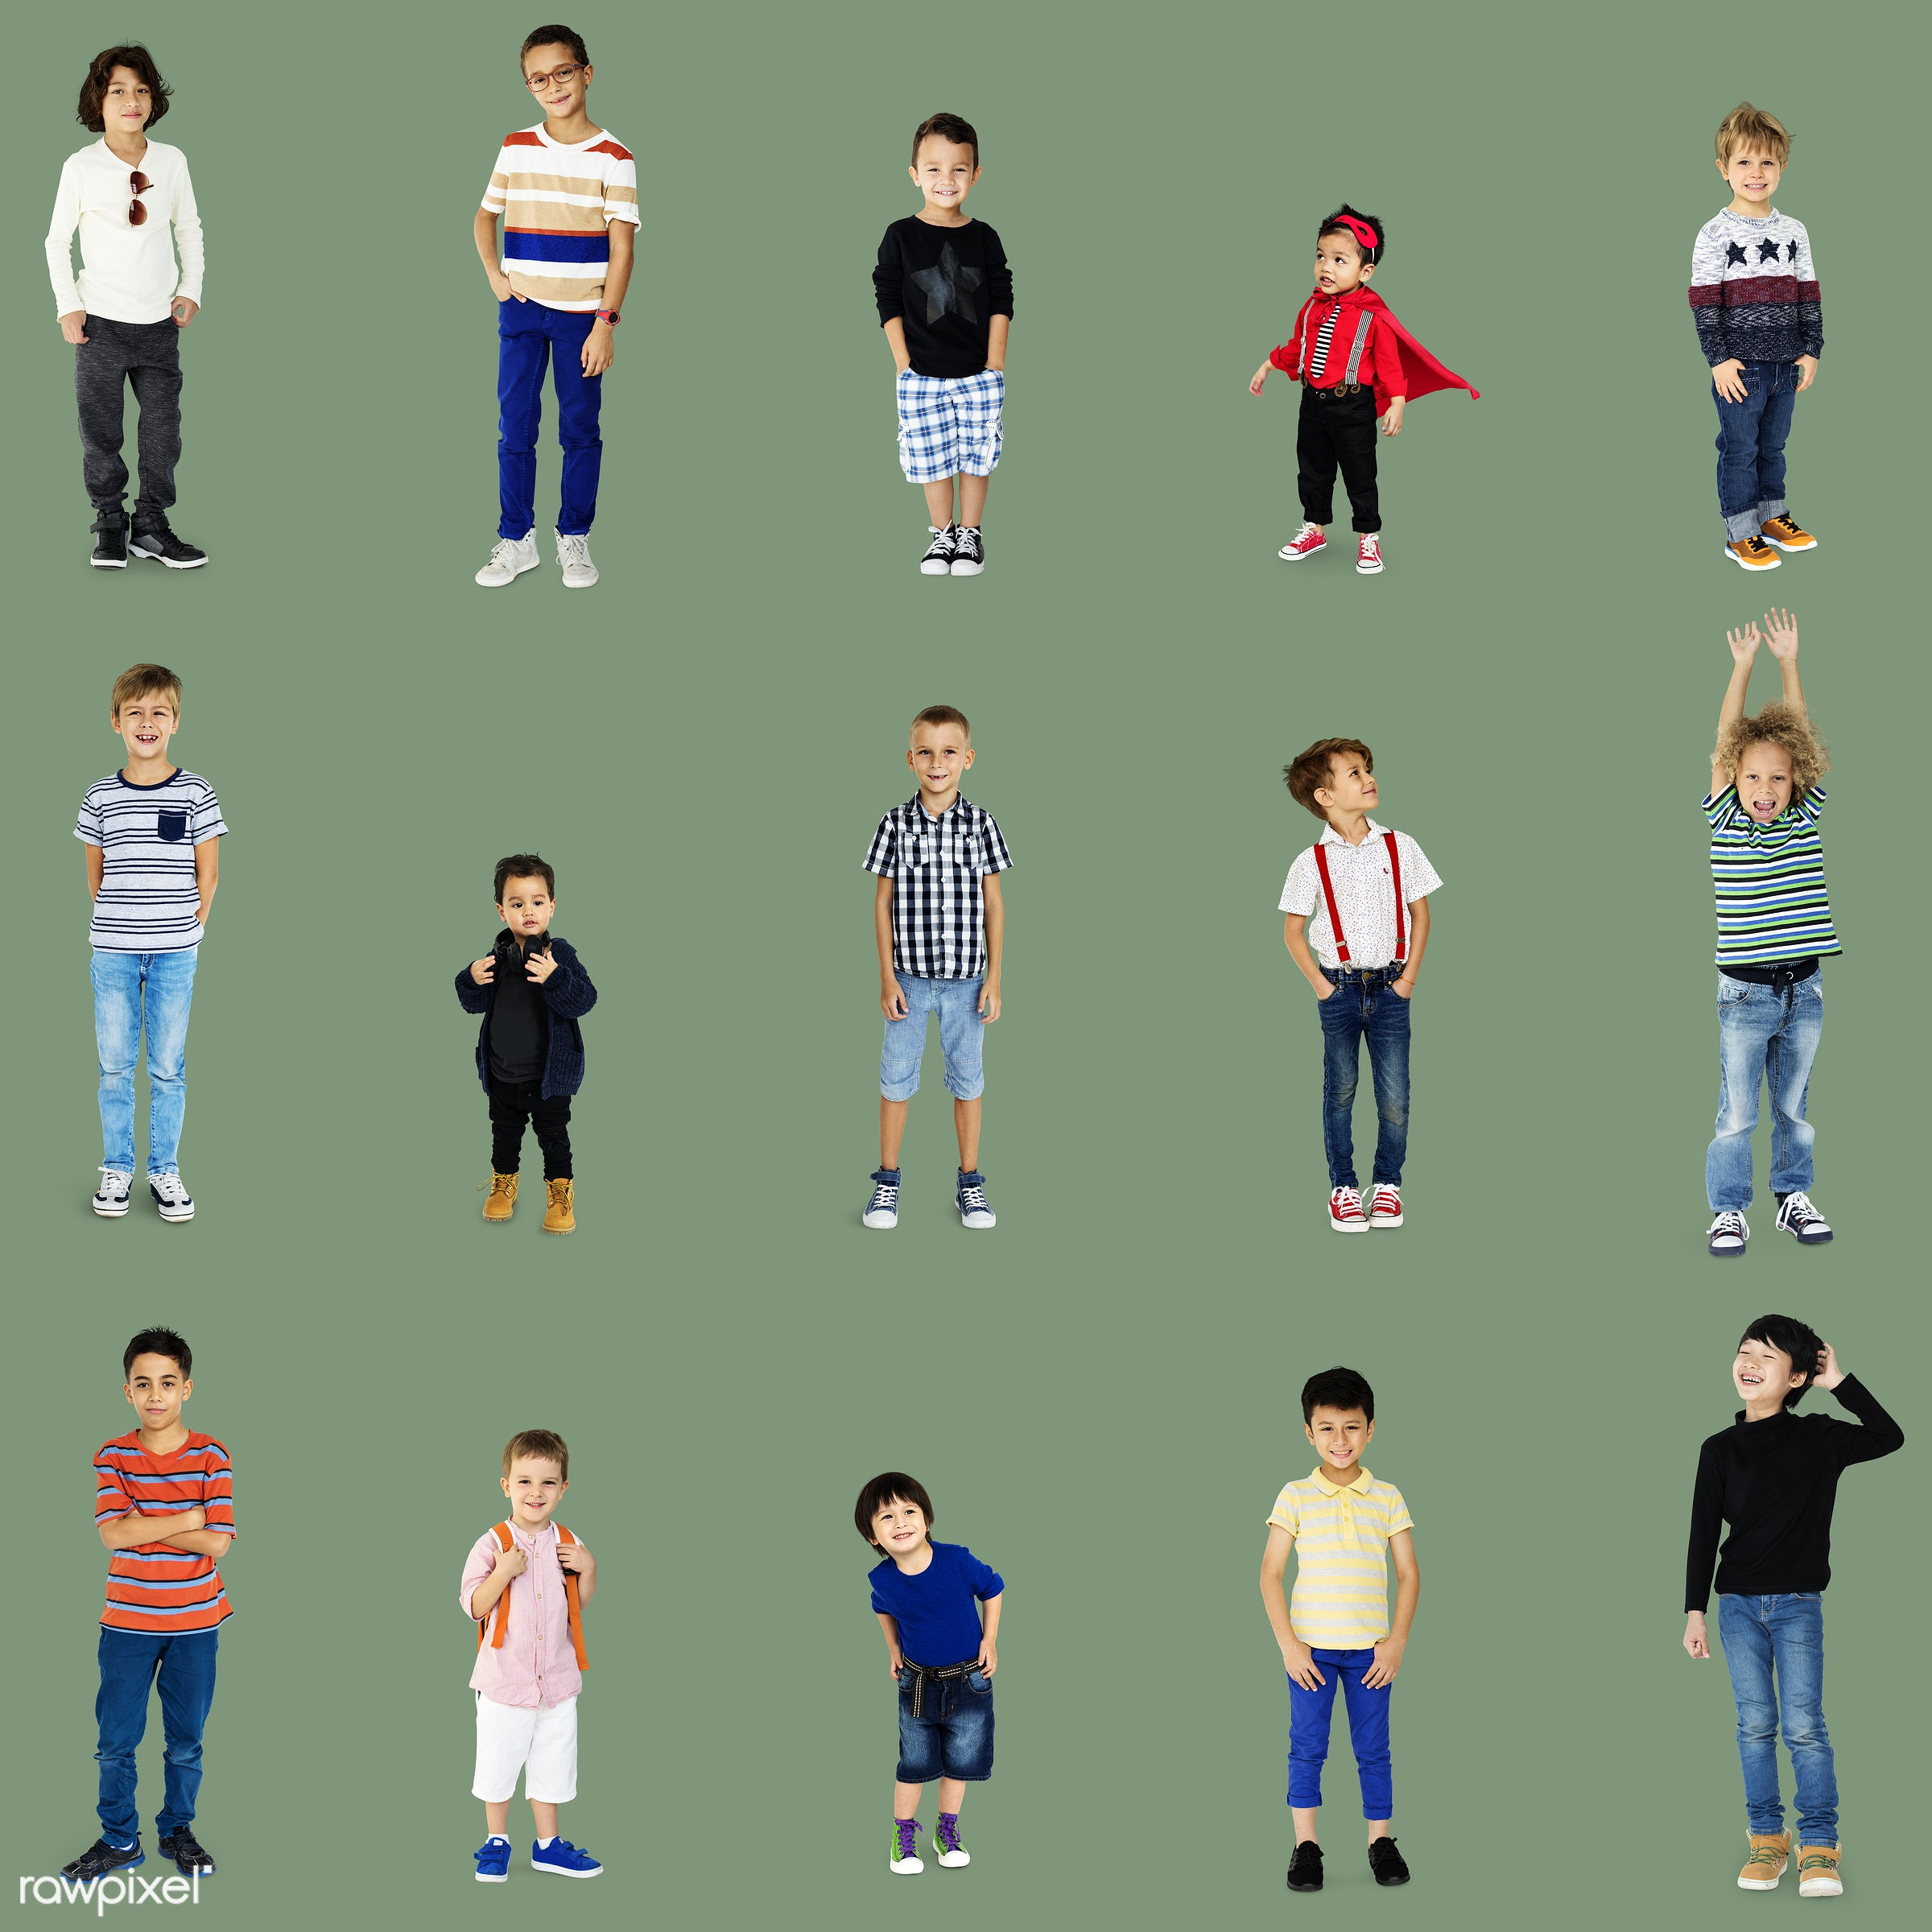 studio, person, diverse, set, children, little, collection, people, together, caucasian, asian, kid, young boy, child, life...